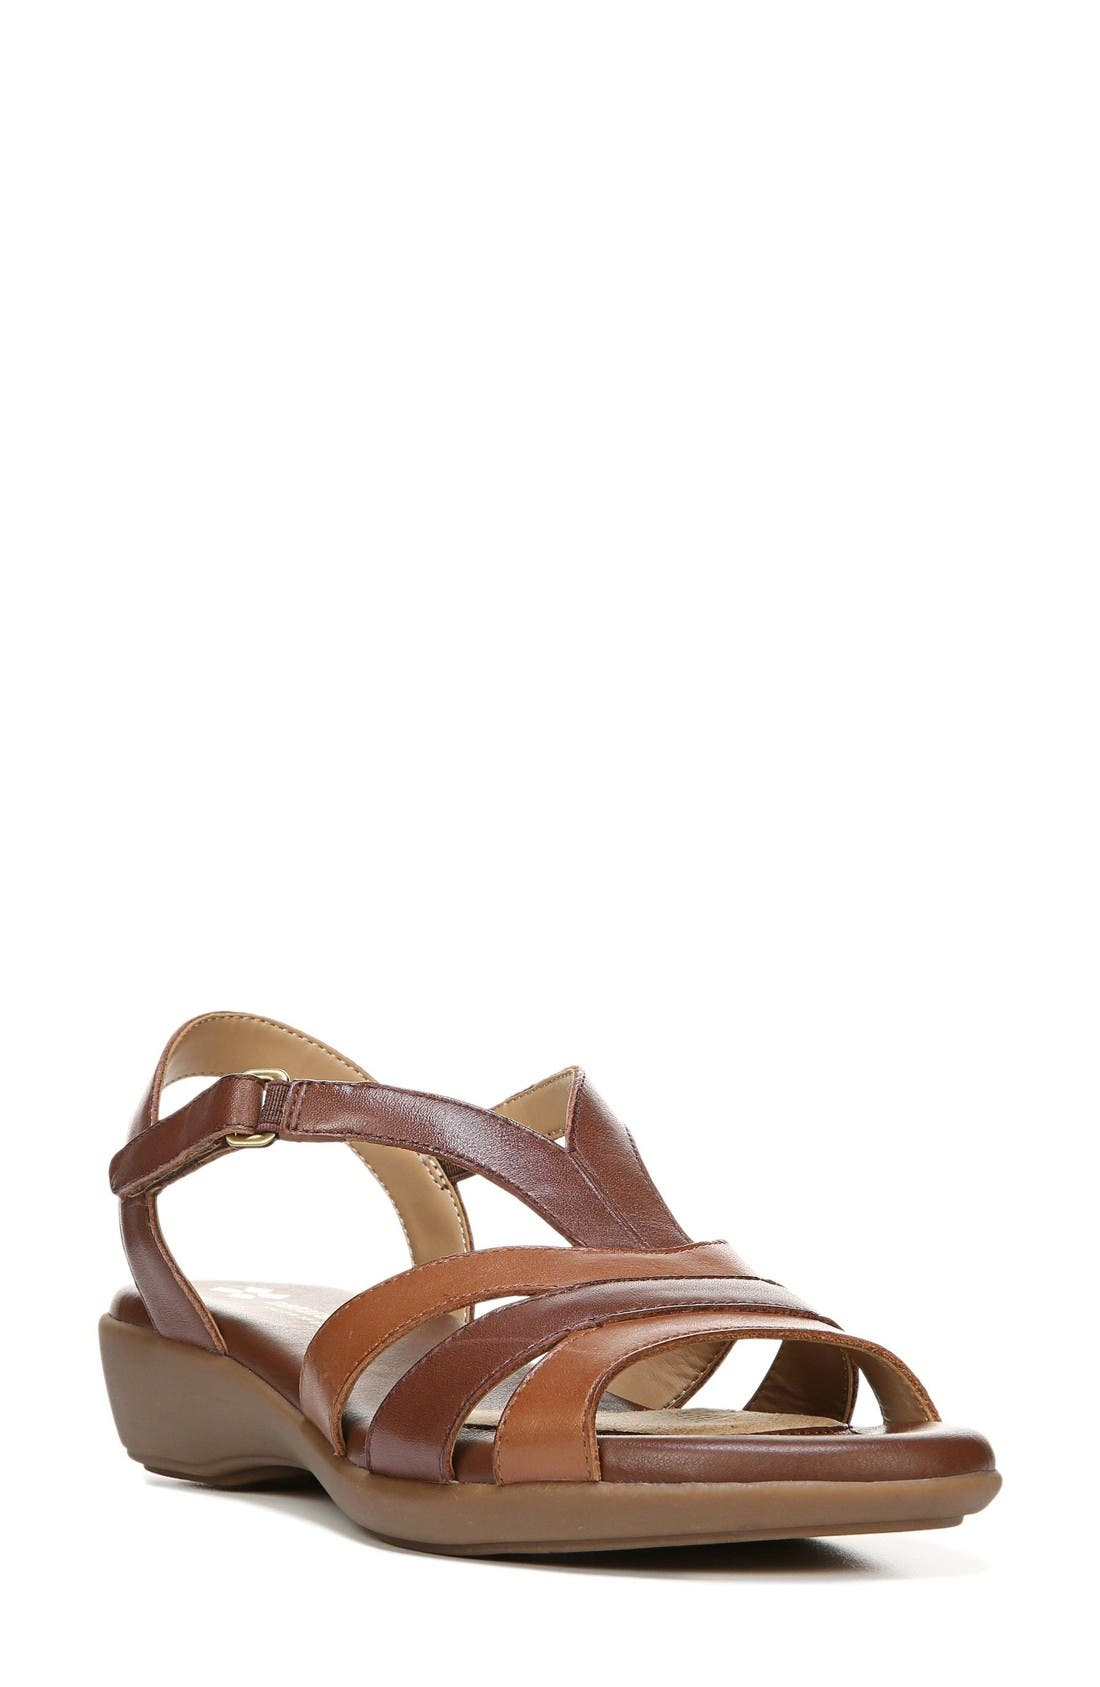 Neina Sandal,                             Main thumbnail 1, color,                             Brown Leather